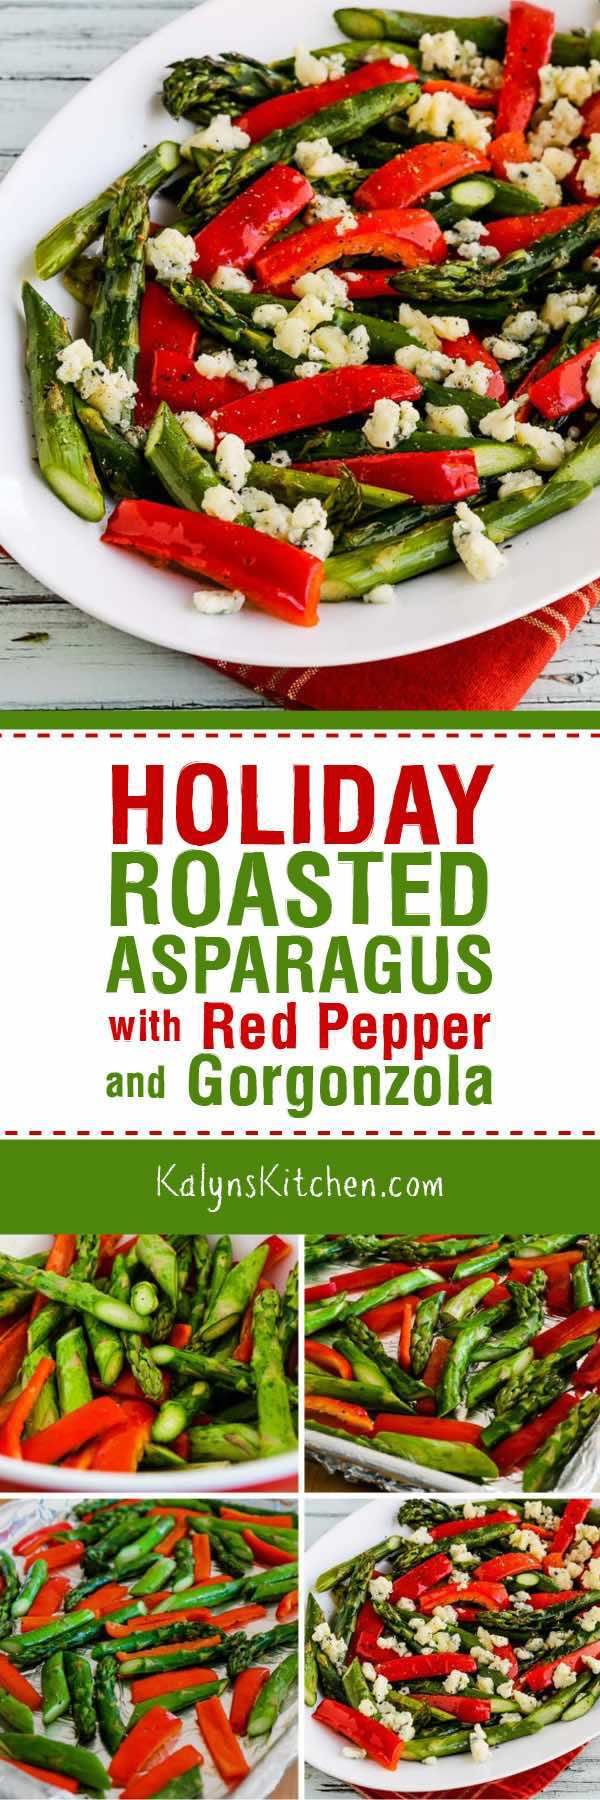 Holiday Roasted Asparagus with Red Pepper and Gorgonzola is easy and delicious, no matter when you make it. This festive dish cooks in 15 minutes, and is low-carb, Keto, low-glycemic, gluten-free, and South Beach Diet friendly. [found on KalynsKitchen.com] #Asparagus #RoastedAsparagus #HolidayRoastedAsparagus #LowCarbRoastedAsparagus